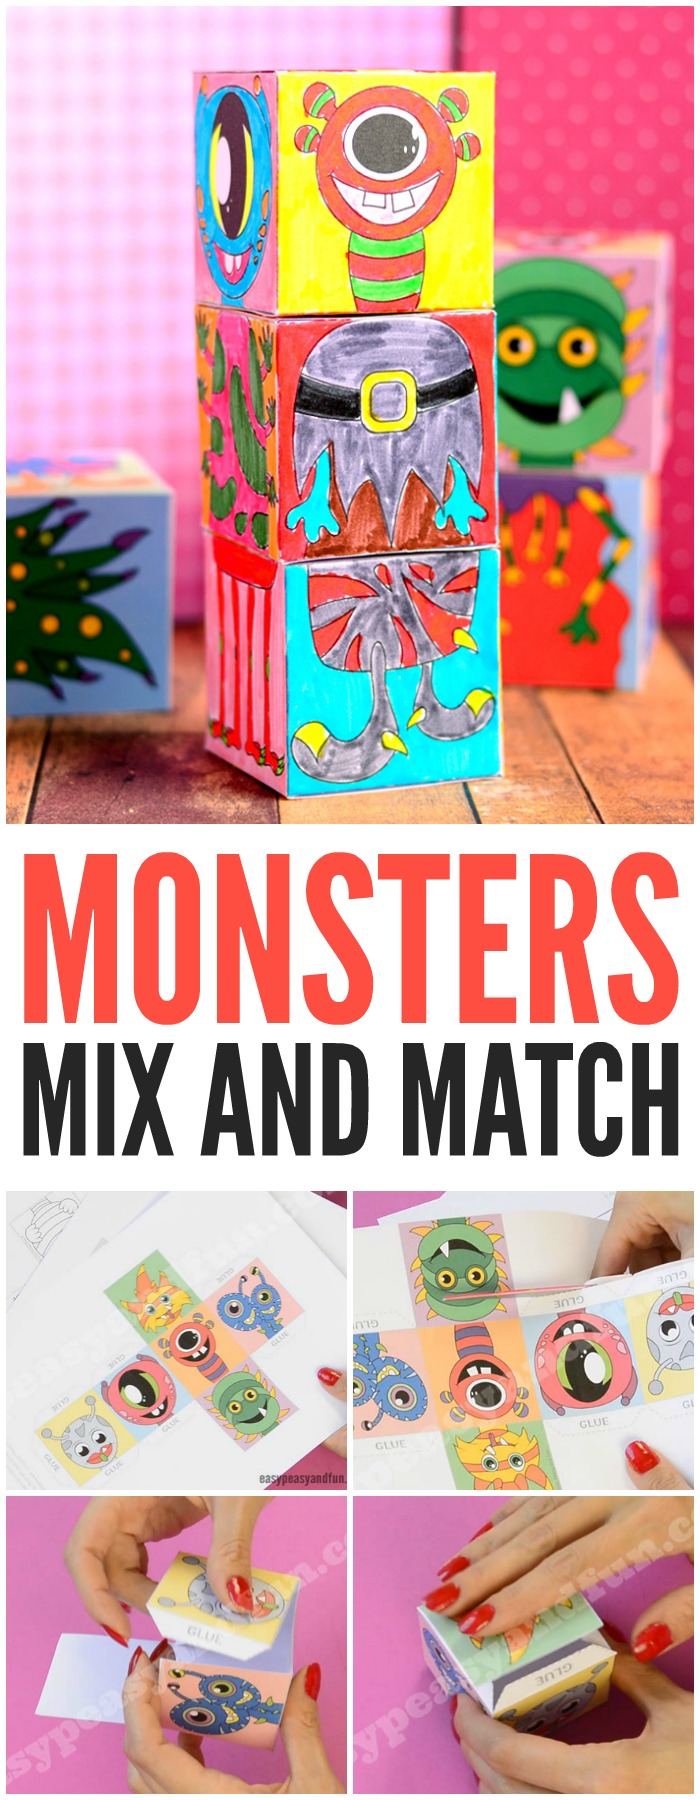 Free Printable Monsters Mix and Match Cubes Fun Halloween Activity for Kids